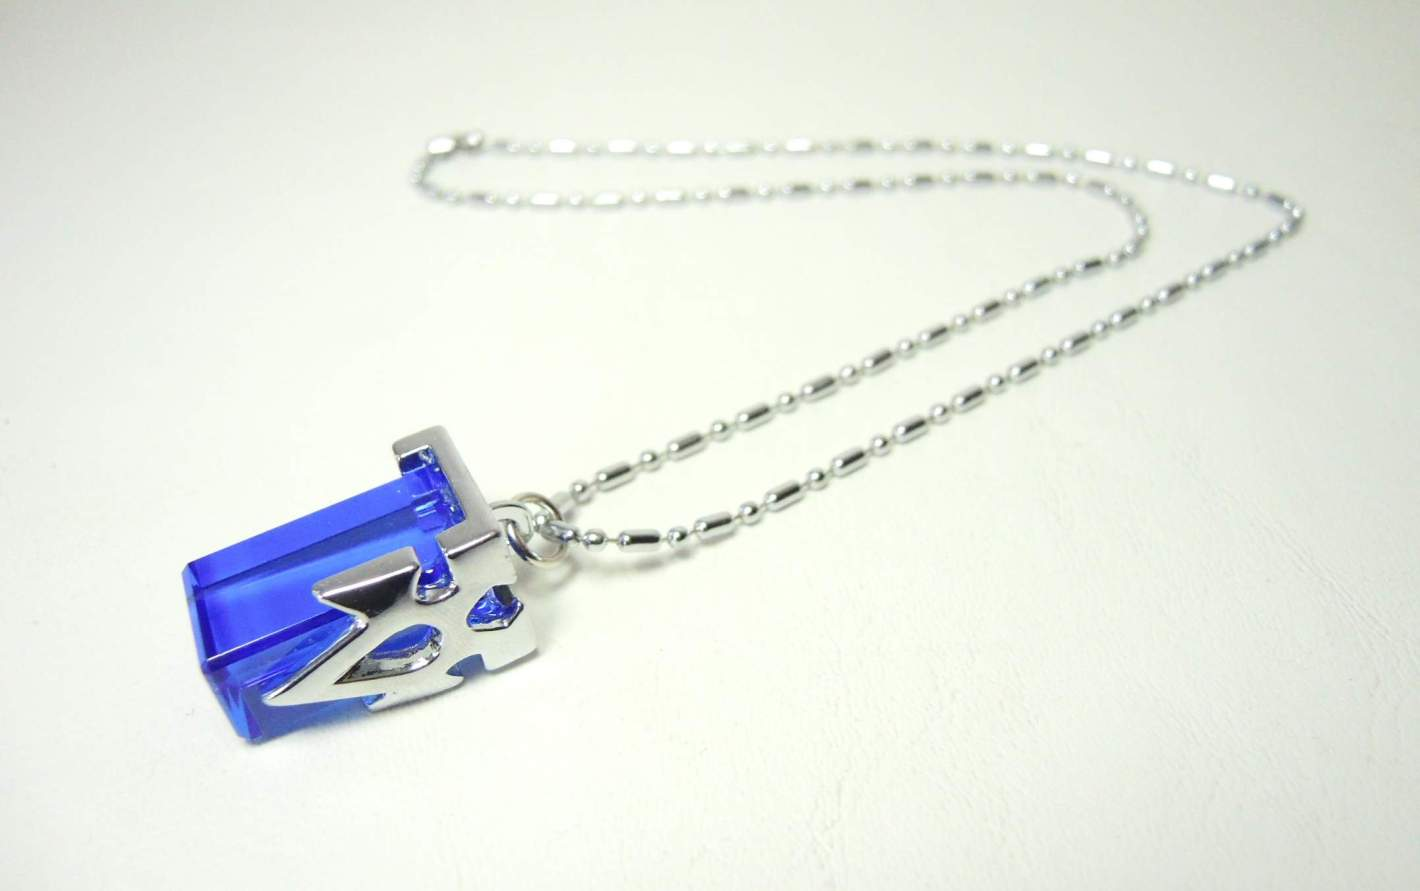 Sword Art Online Blue Teleport Crystal pendant necklace China, Sword Art Online, Necklace, 2015|Color~blue|Color~silver, scifi, japan